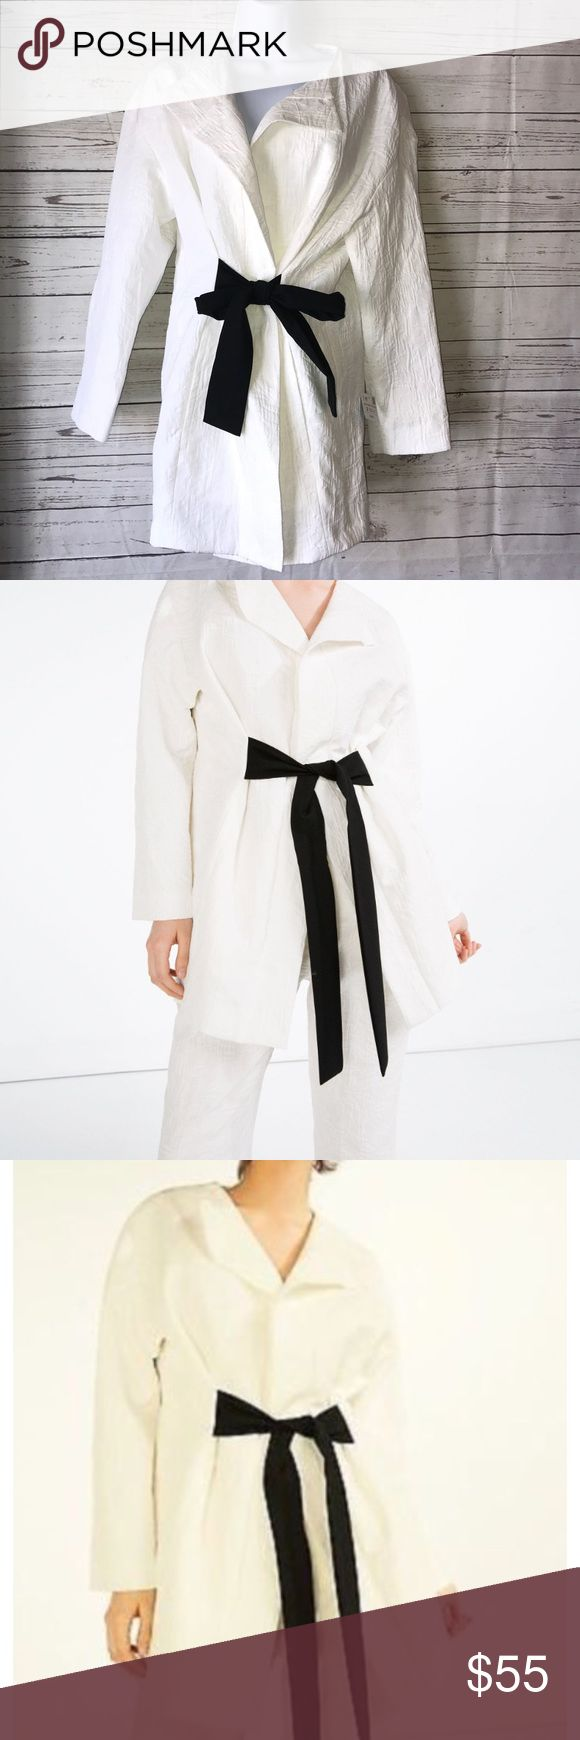 Zara white long jaquered blazer jacket Sz Small New with Tags Blazer by Zara. Super cute for fall in winter. It mainly white with a contrasting black sash tie belt.  Outer shell: 69% cotton, 31% polyester. Lining. 100% Acetate Zara Jackets & Coats Blazers